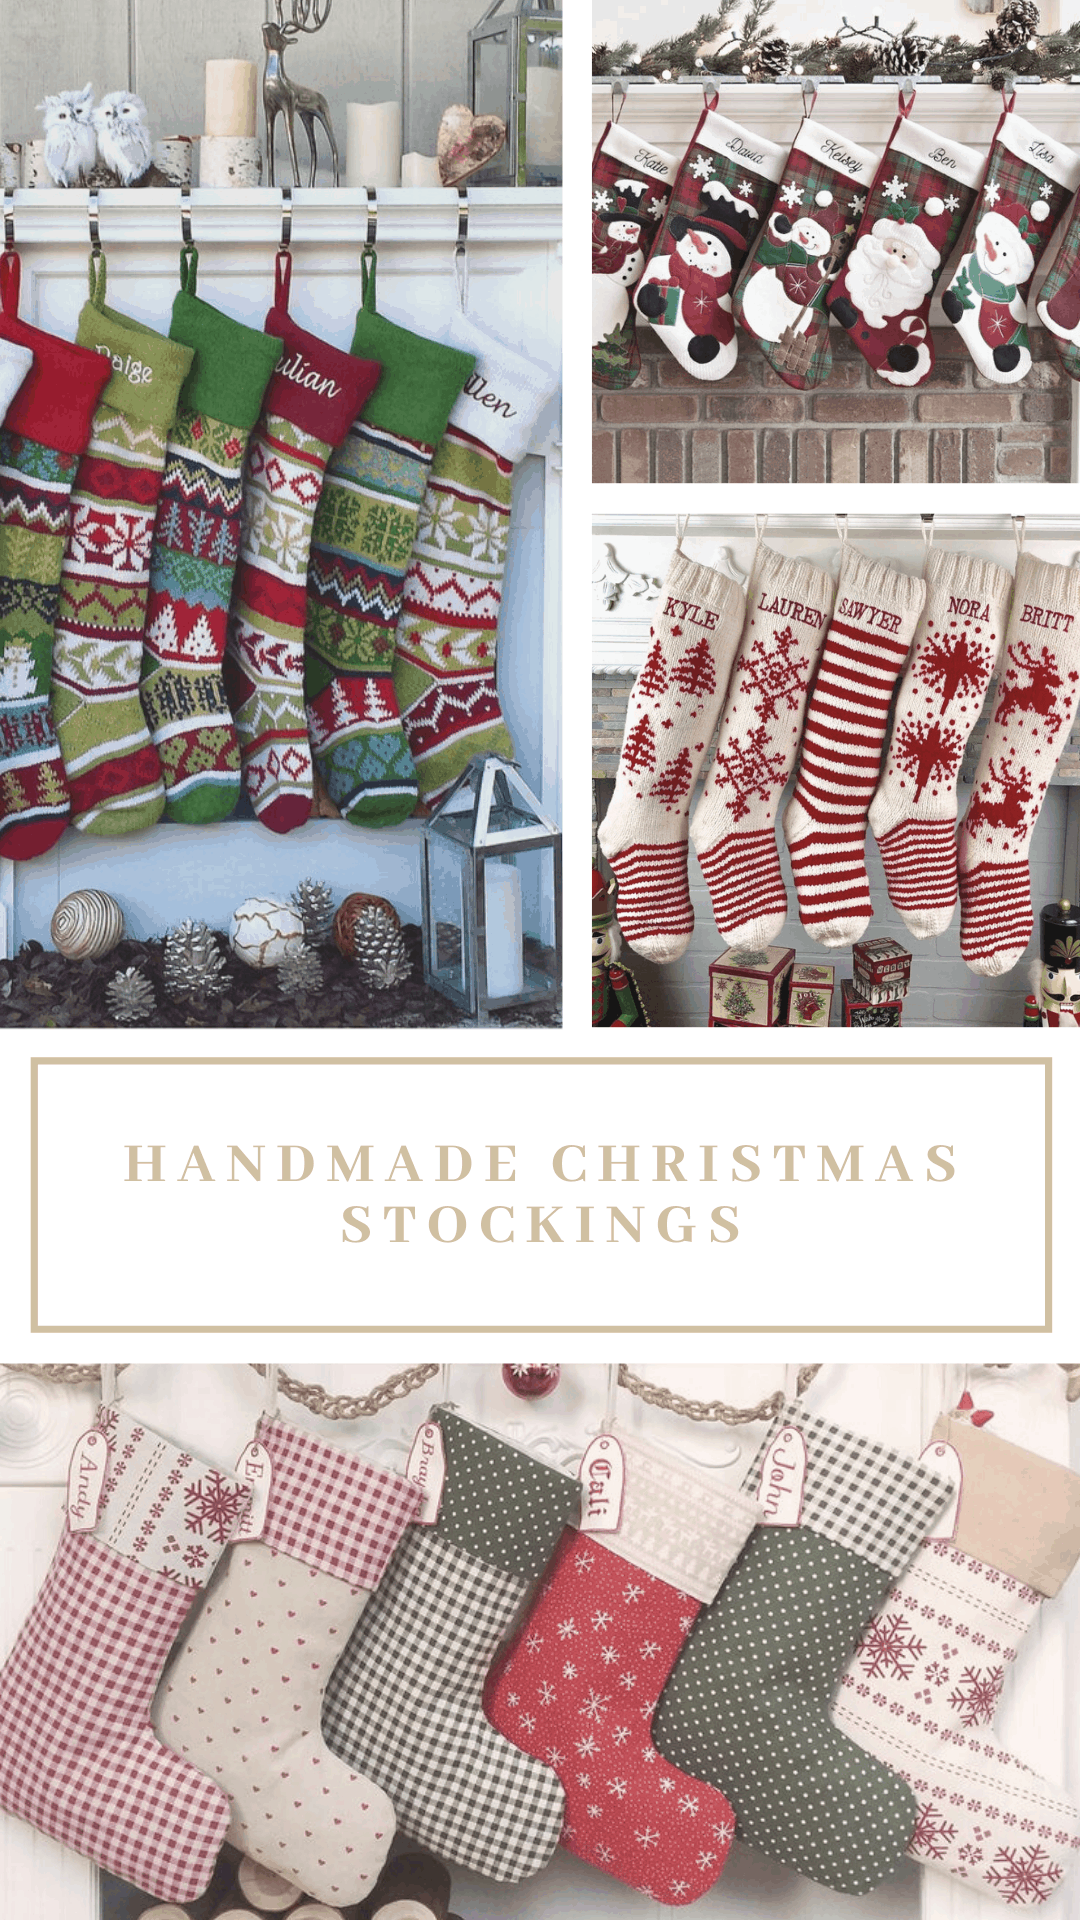 Wow - these handmade Christmas stockings are just beautiful - and I love that you can customize them with people's names so Santa knows whose is whose!